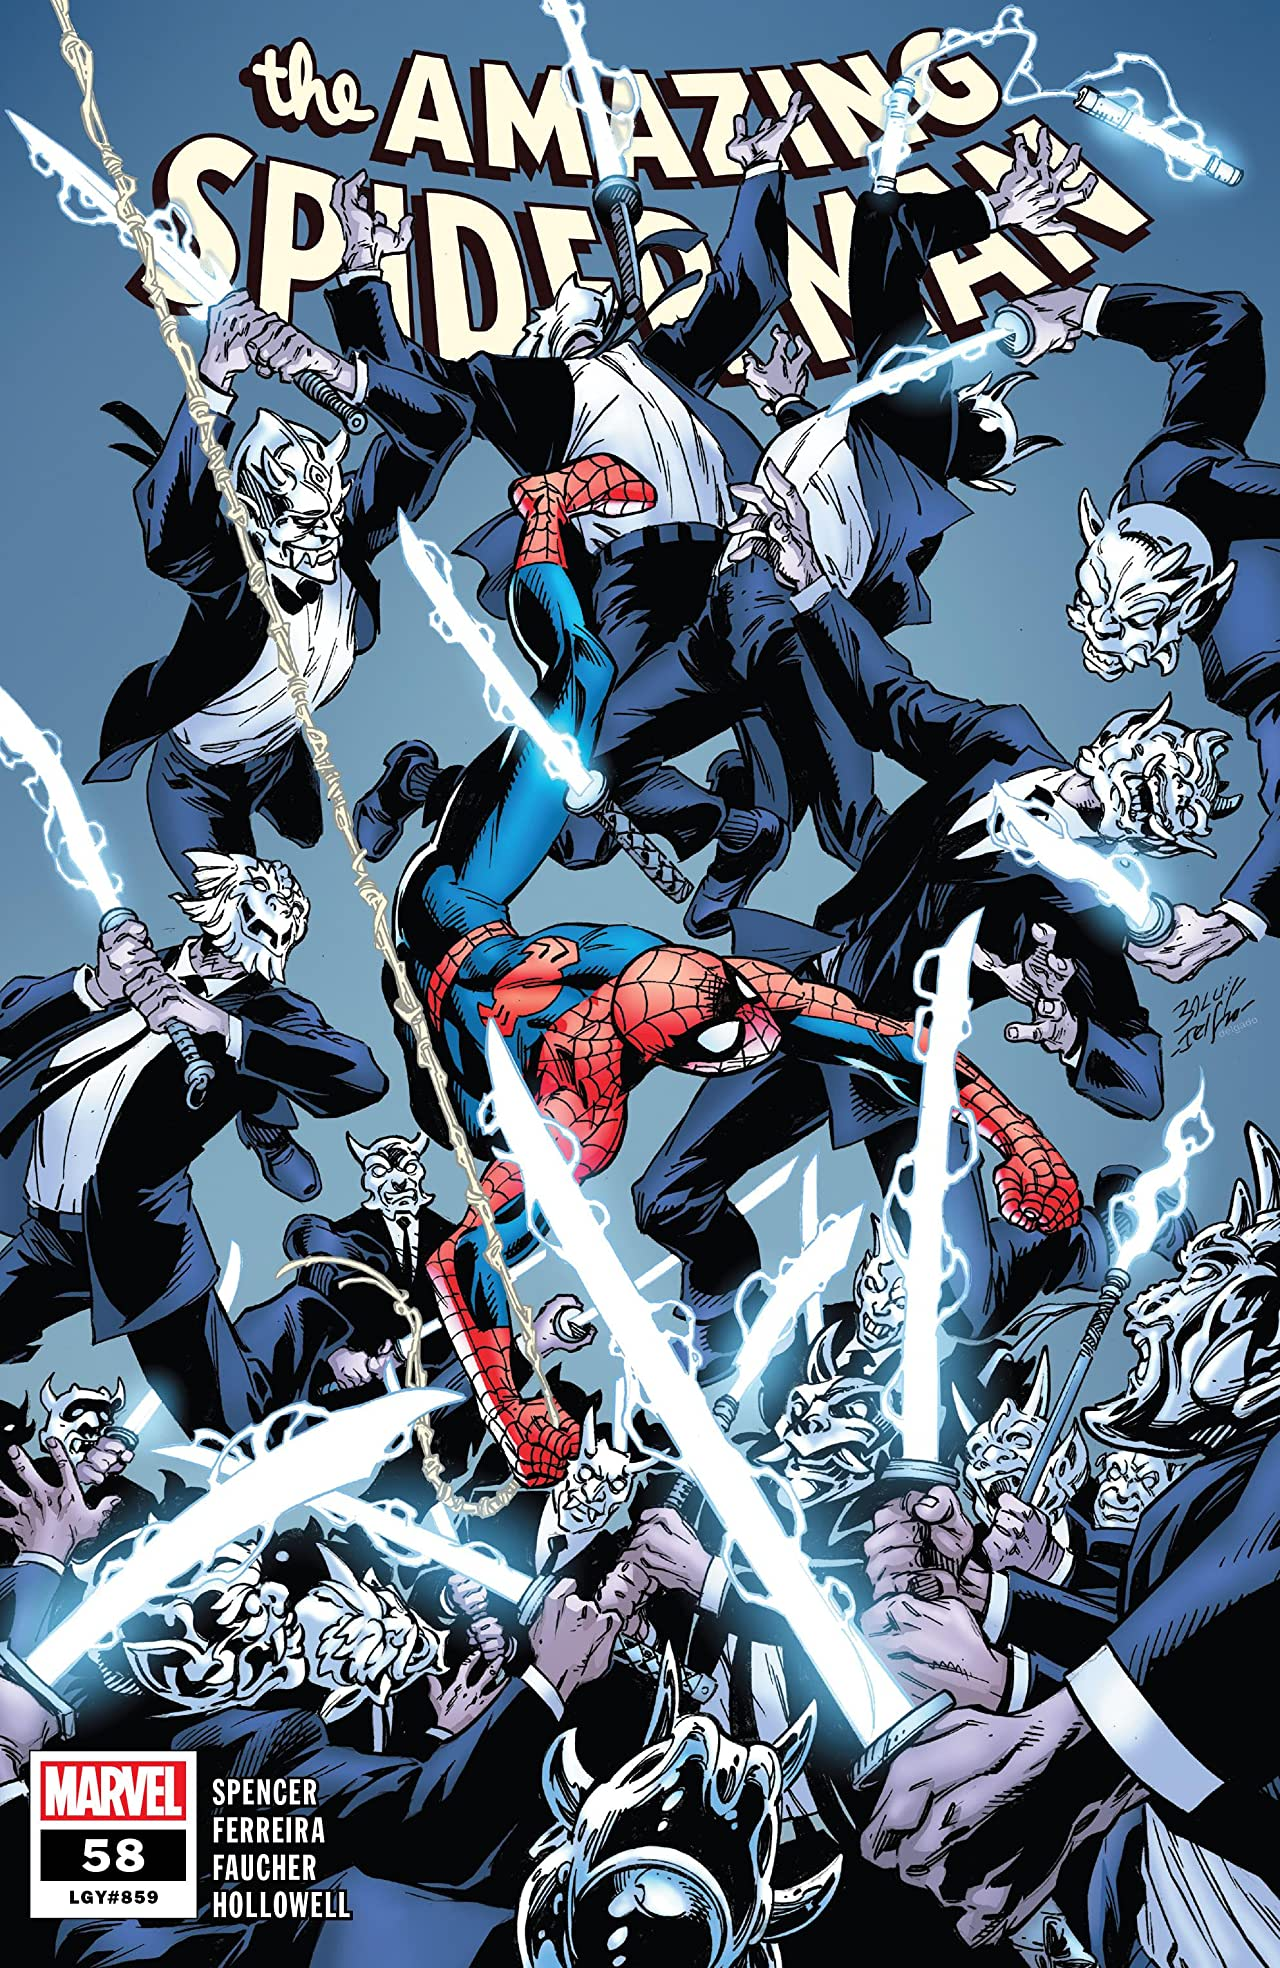 REVIEW: Amazing Spider-Man #58